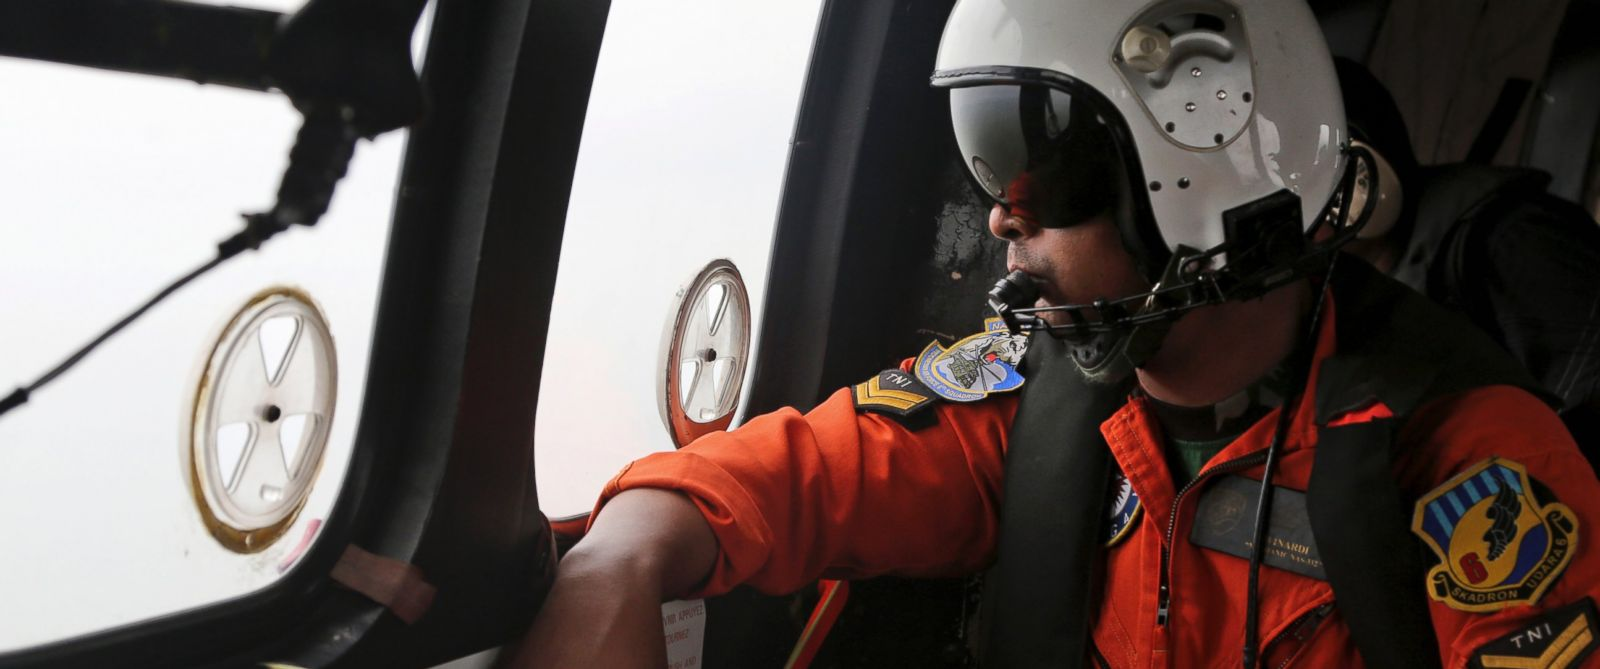 PHOTO: A crew member of Indonesian Air Force NAS 332 Super Puma helicopter, looks out of the windows during a search operation for the victims and wreckage of AirAsia Flight QZ 8501 over the Java Sea, Indonesia, Jan. 5, 2015.